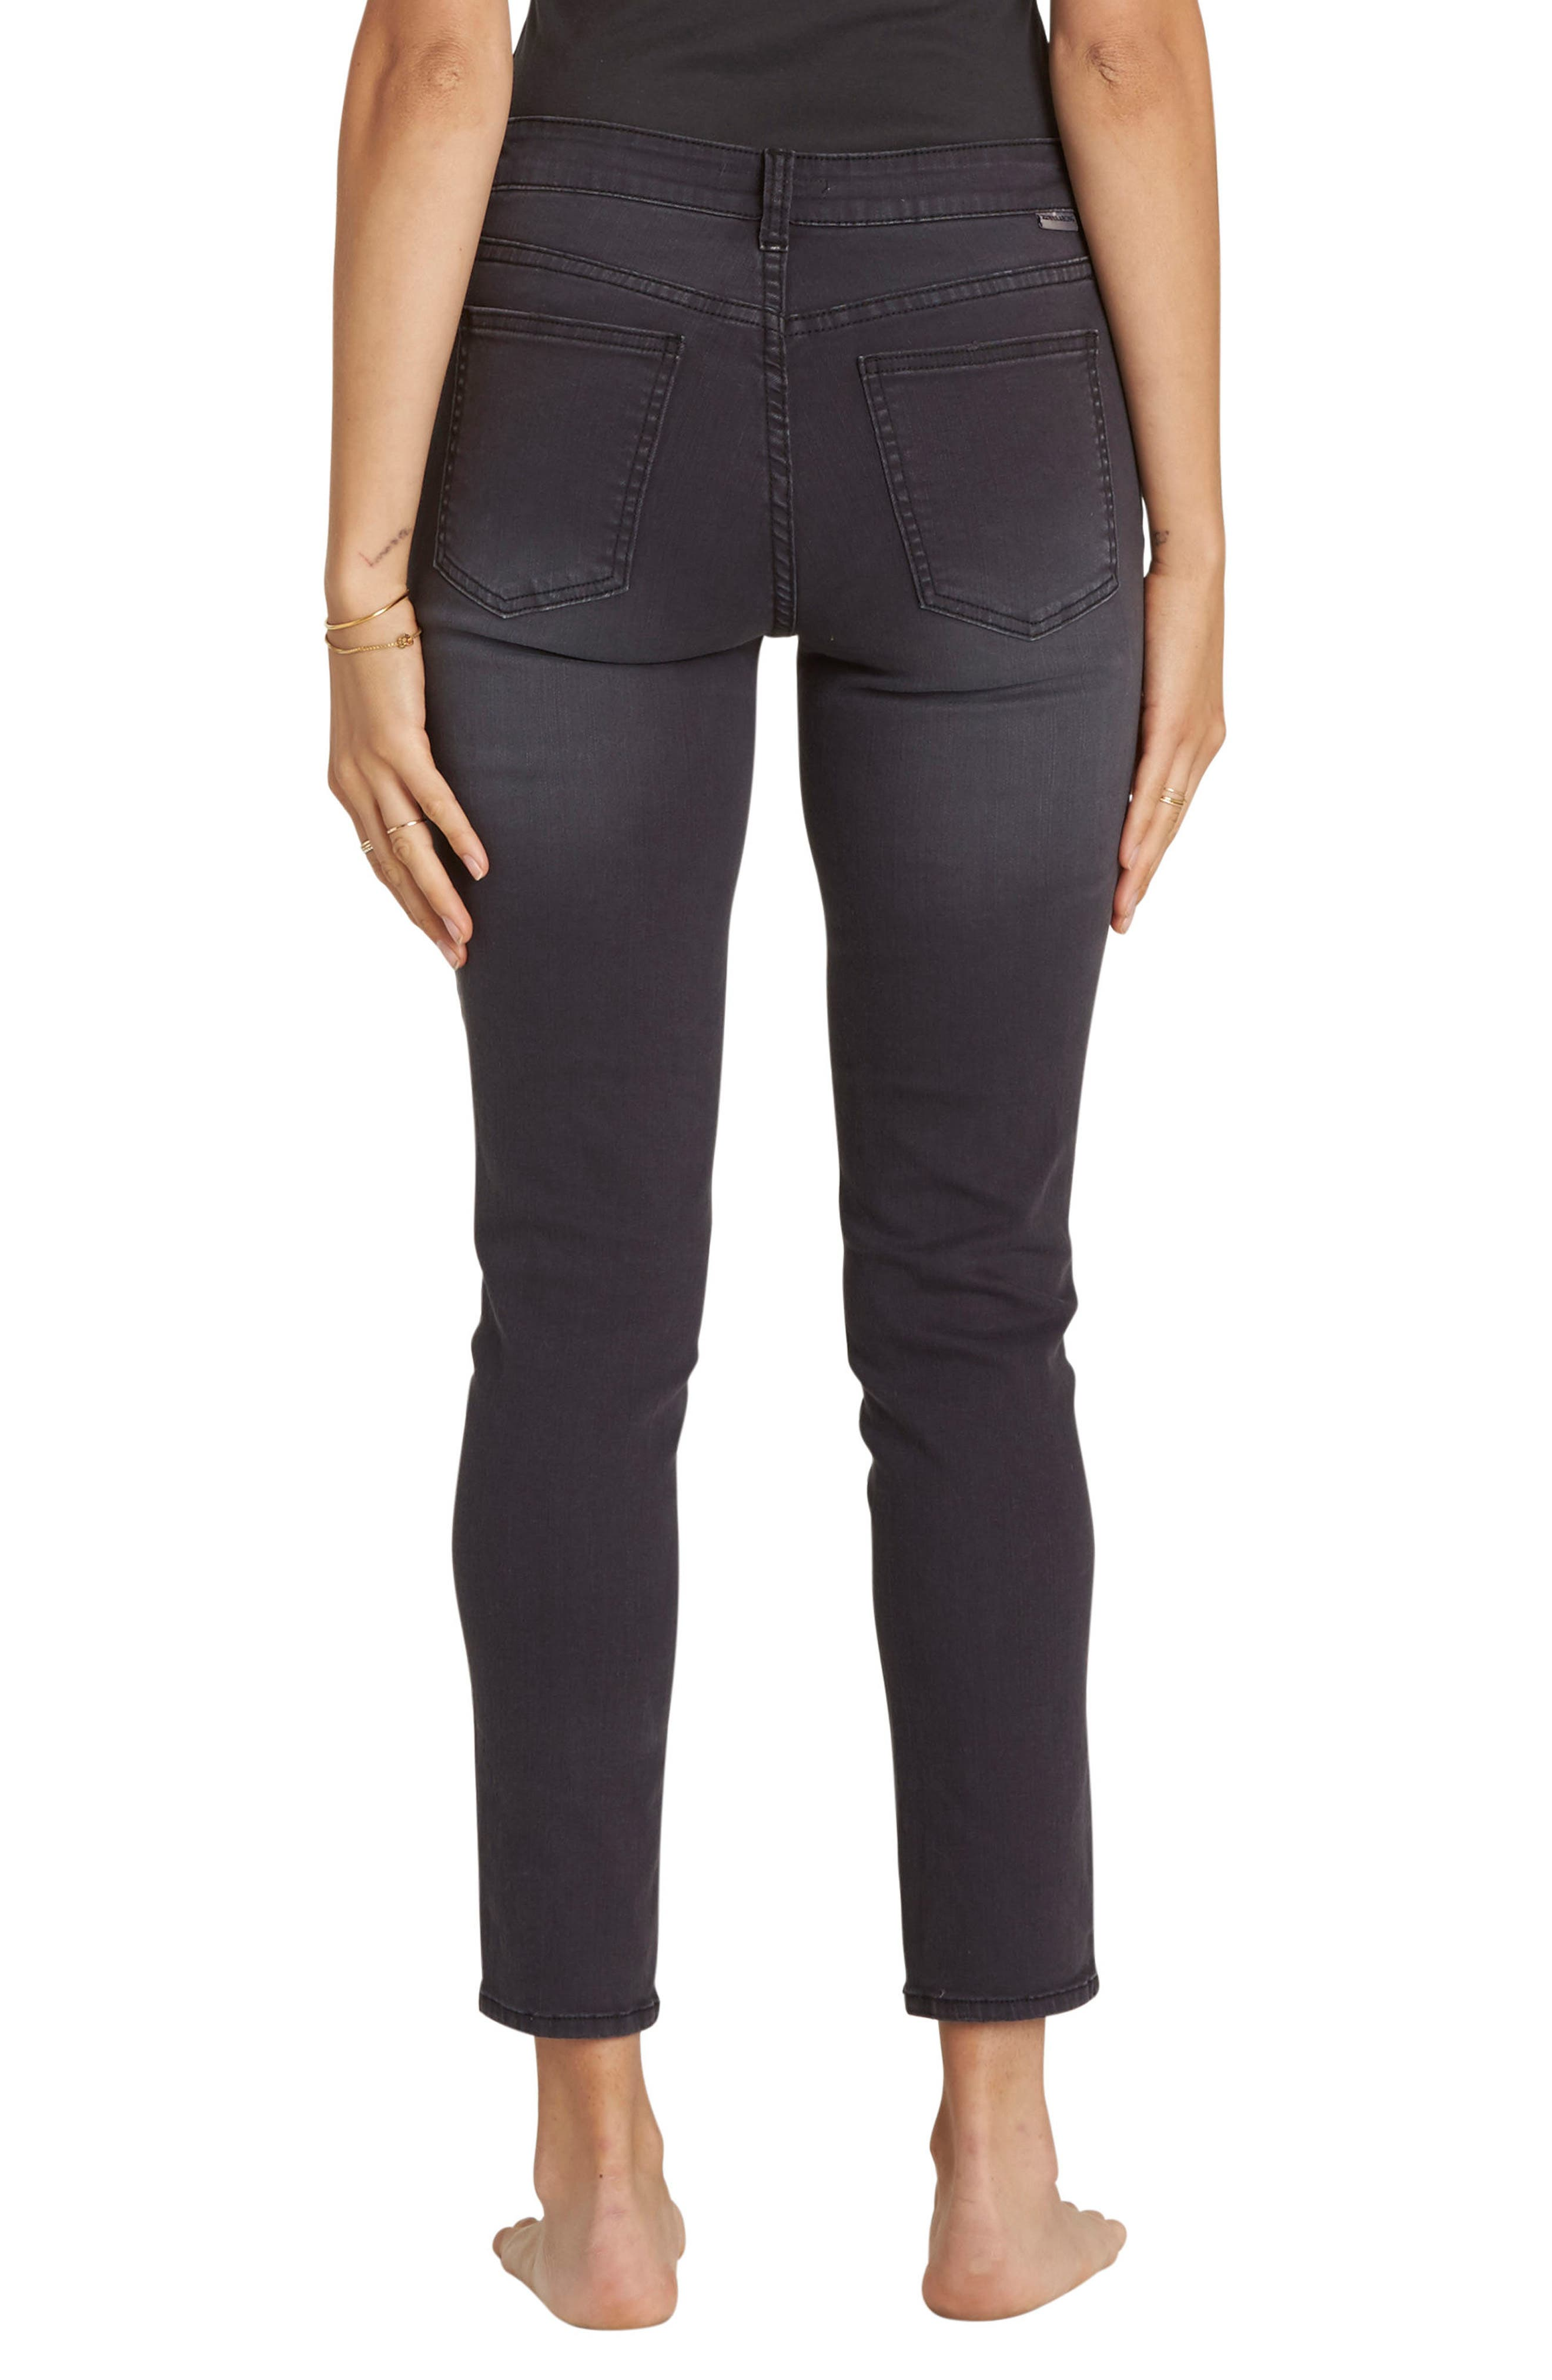 Side By Side Lace Up Skinny Jeans,                             Alternate thumbnail 2, color,                             Black Pebble